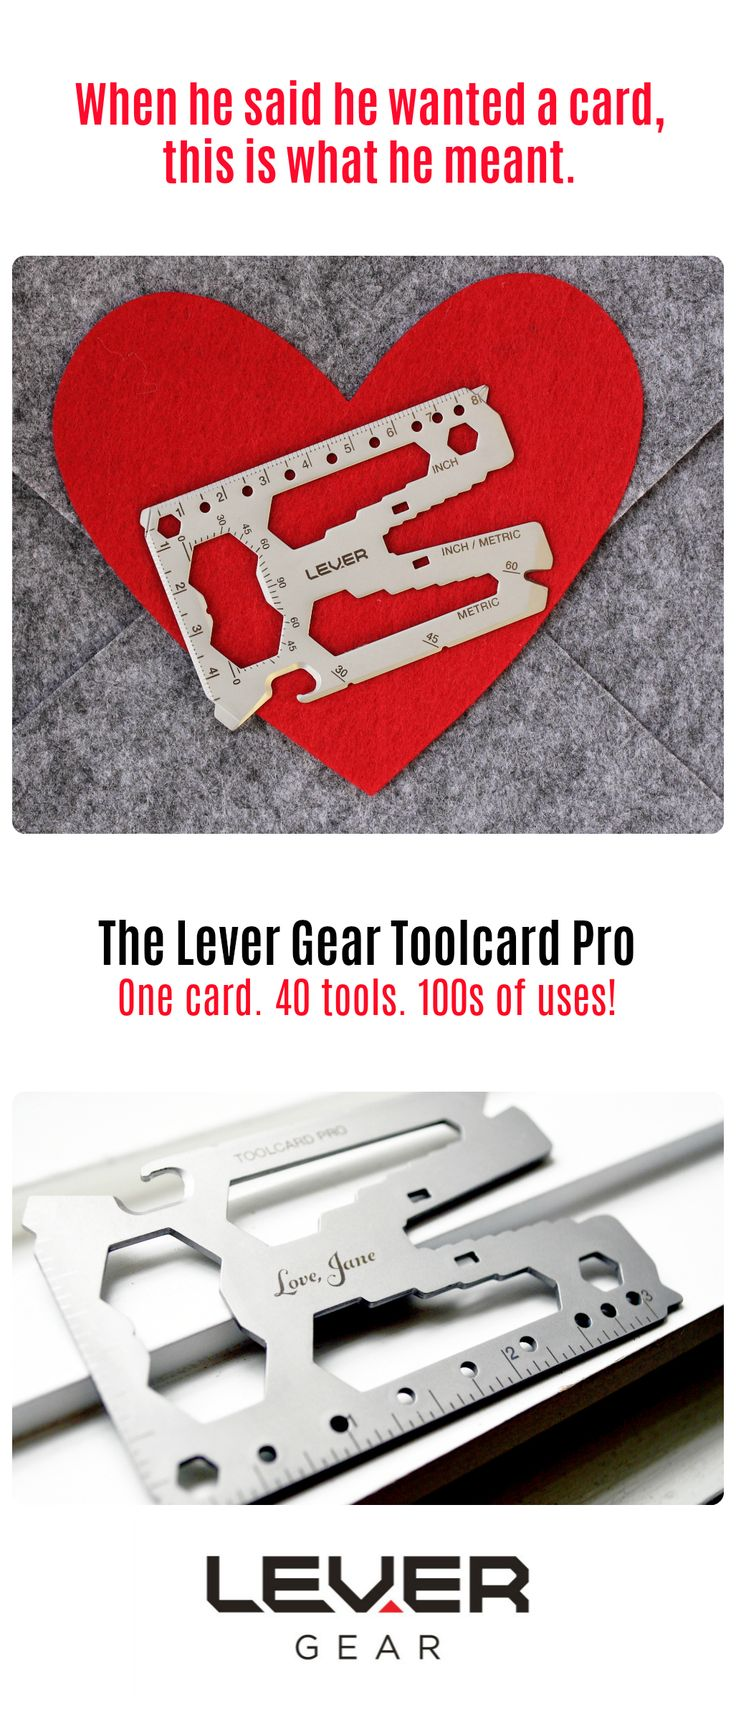 Show him you care with a personalized gift that's actually useful! Lever Gear Toolcard Pro. Credit card-sized multitool with 40 tools. Made in America from 420 stainless steel. Detachable money clip. TSA compliant. Lifetime guarantee. Add your personalized message for Valentine's, milestone birthdays, anniversaries, retirements or just because. #Valentine